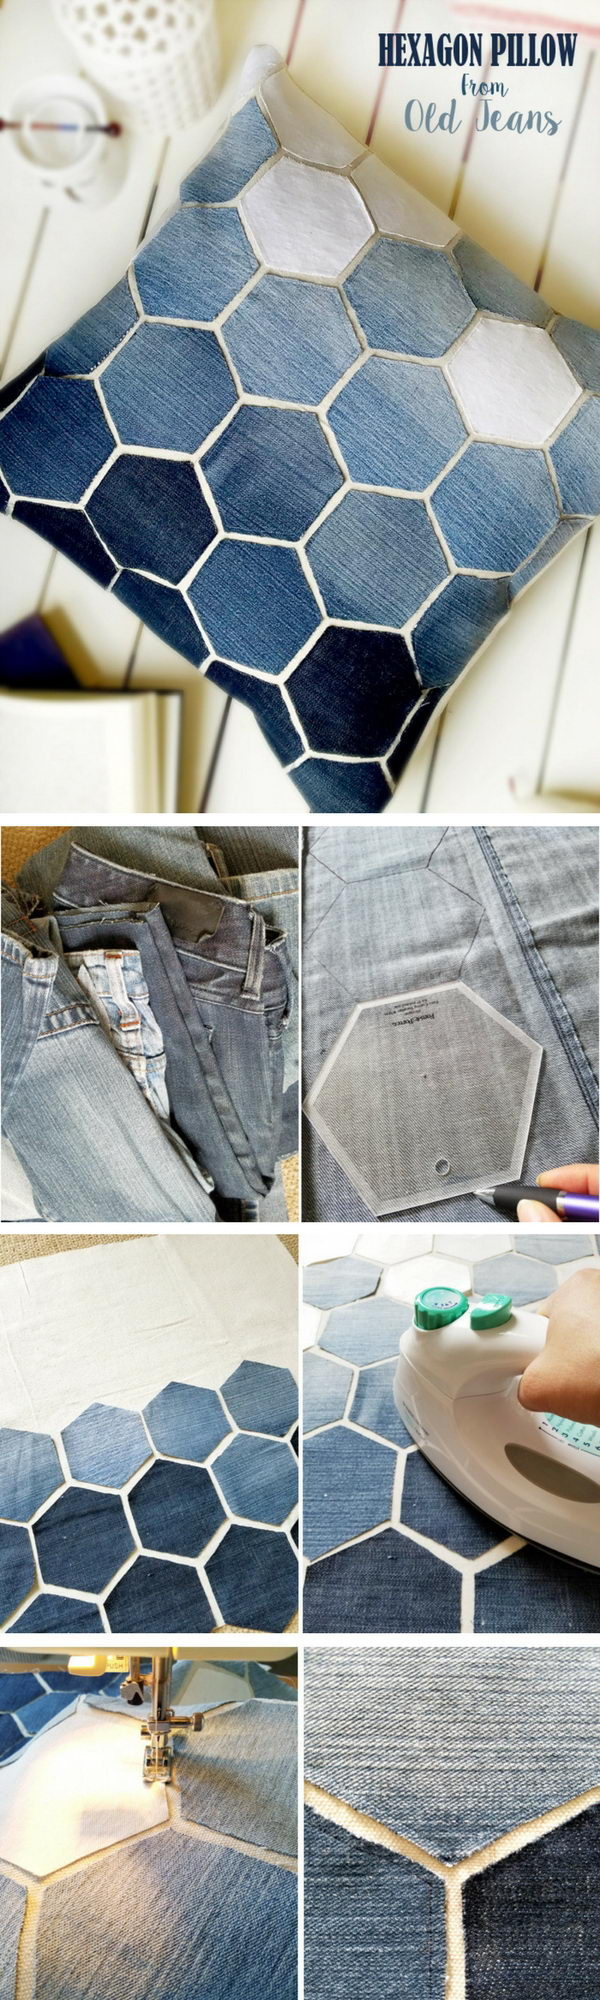 20 Creative DIY Ideas to Repurpose Your Old Jeans